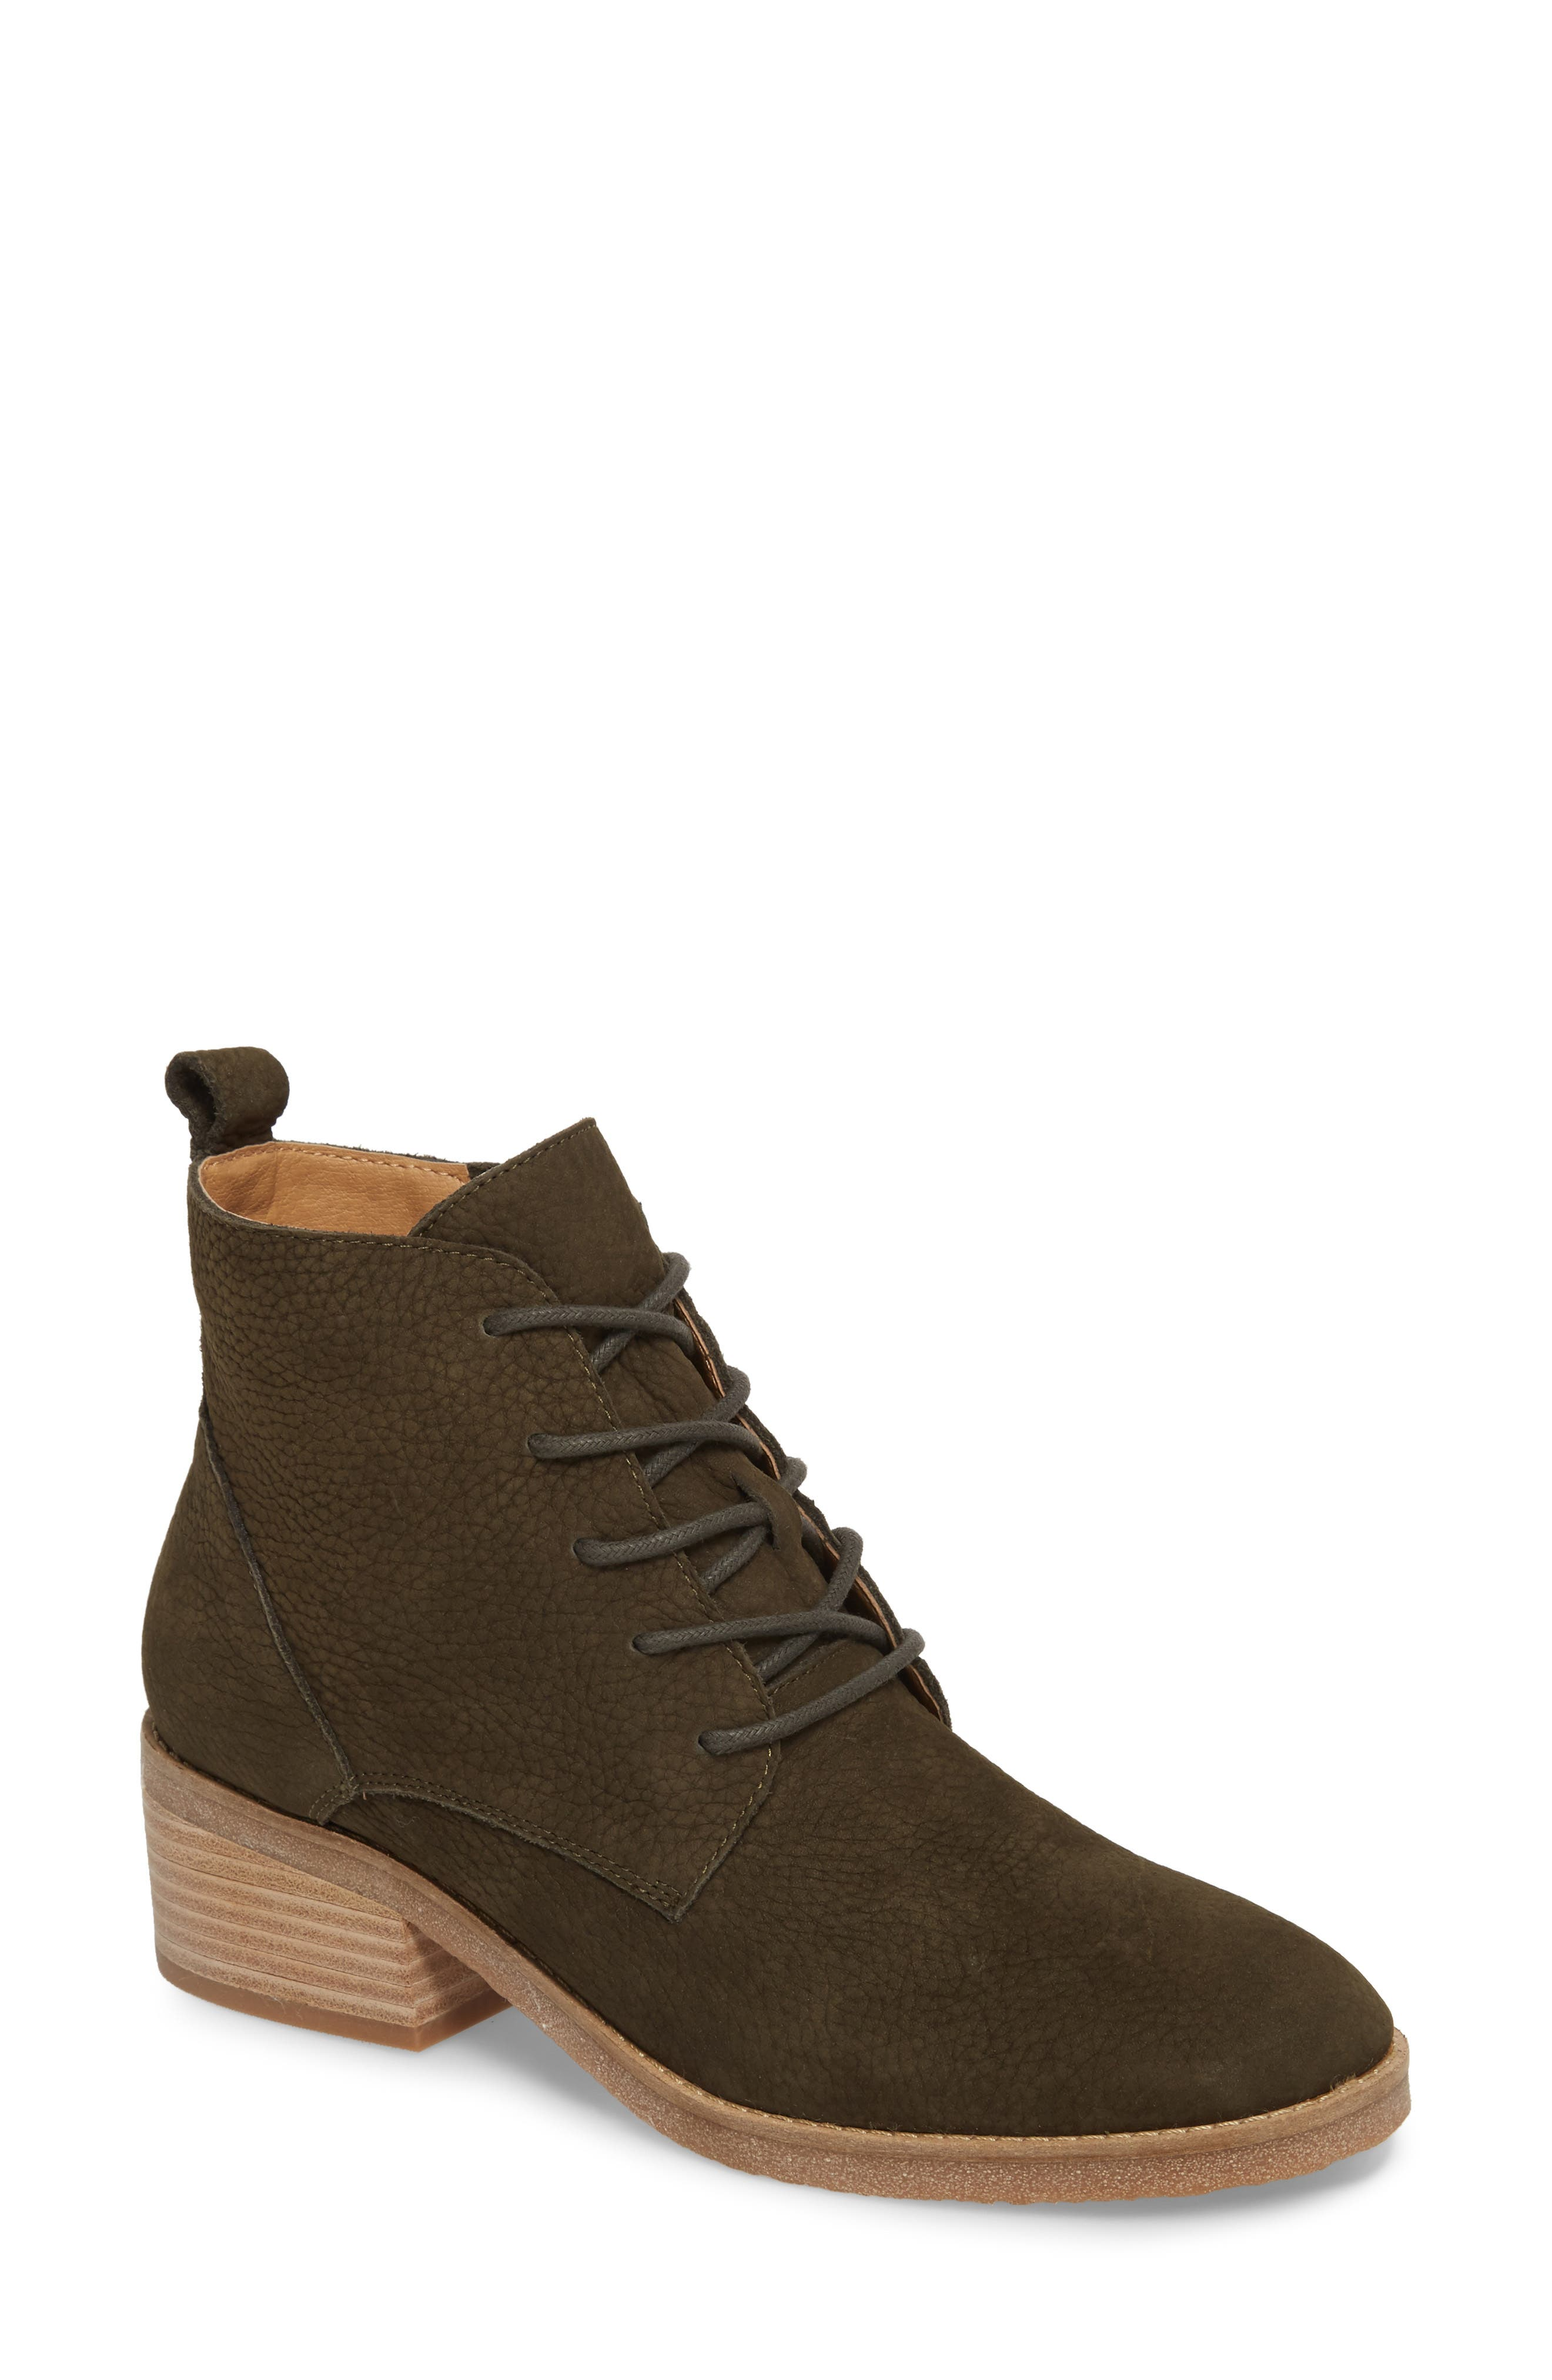 Tamela Lace-Up Bootie,                             Main thumbnail 1, color,                             Dark Moss Nubuck